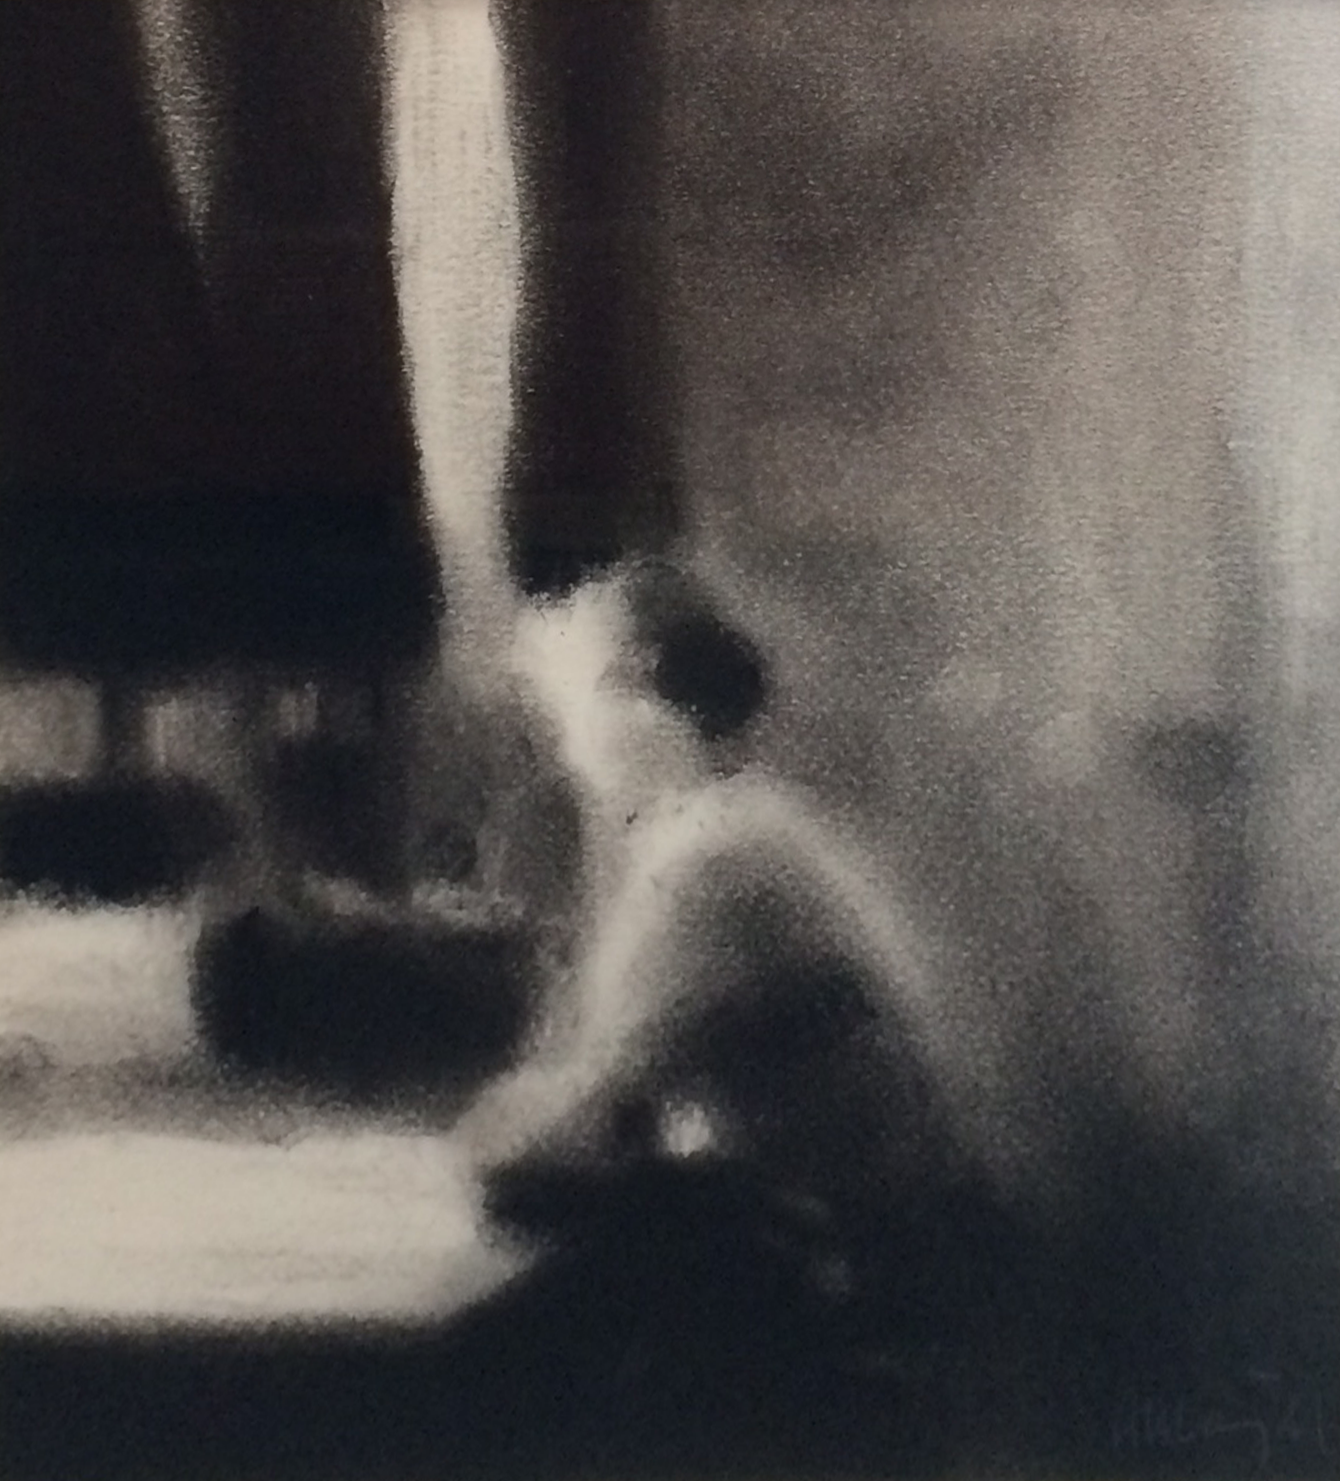 Artist: Anne Magill  Title: Sitting  Medium: Charcoal on paper  Size: 19 x 18 cm  Price: £1650